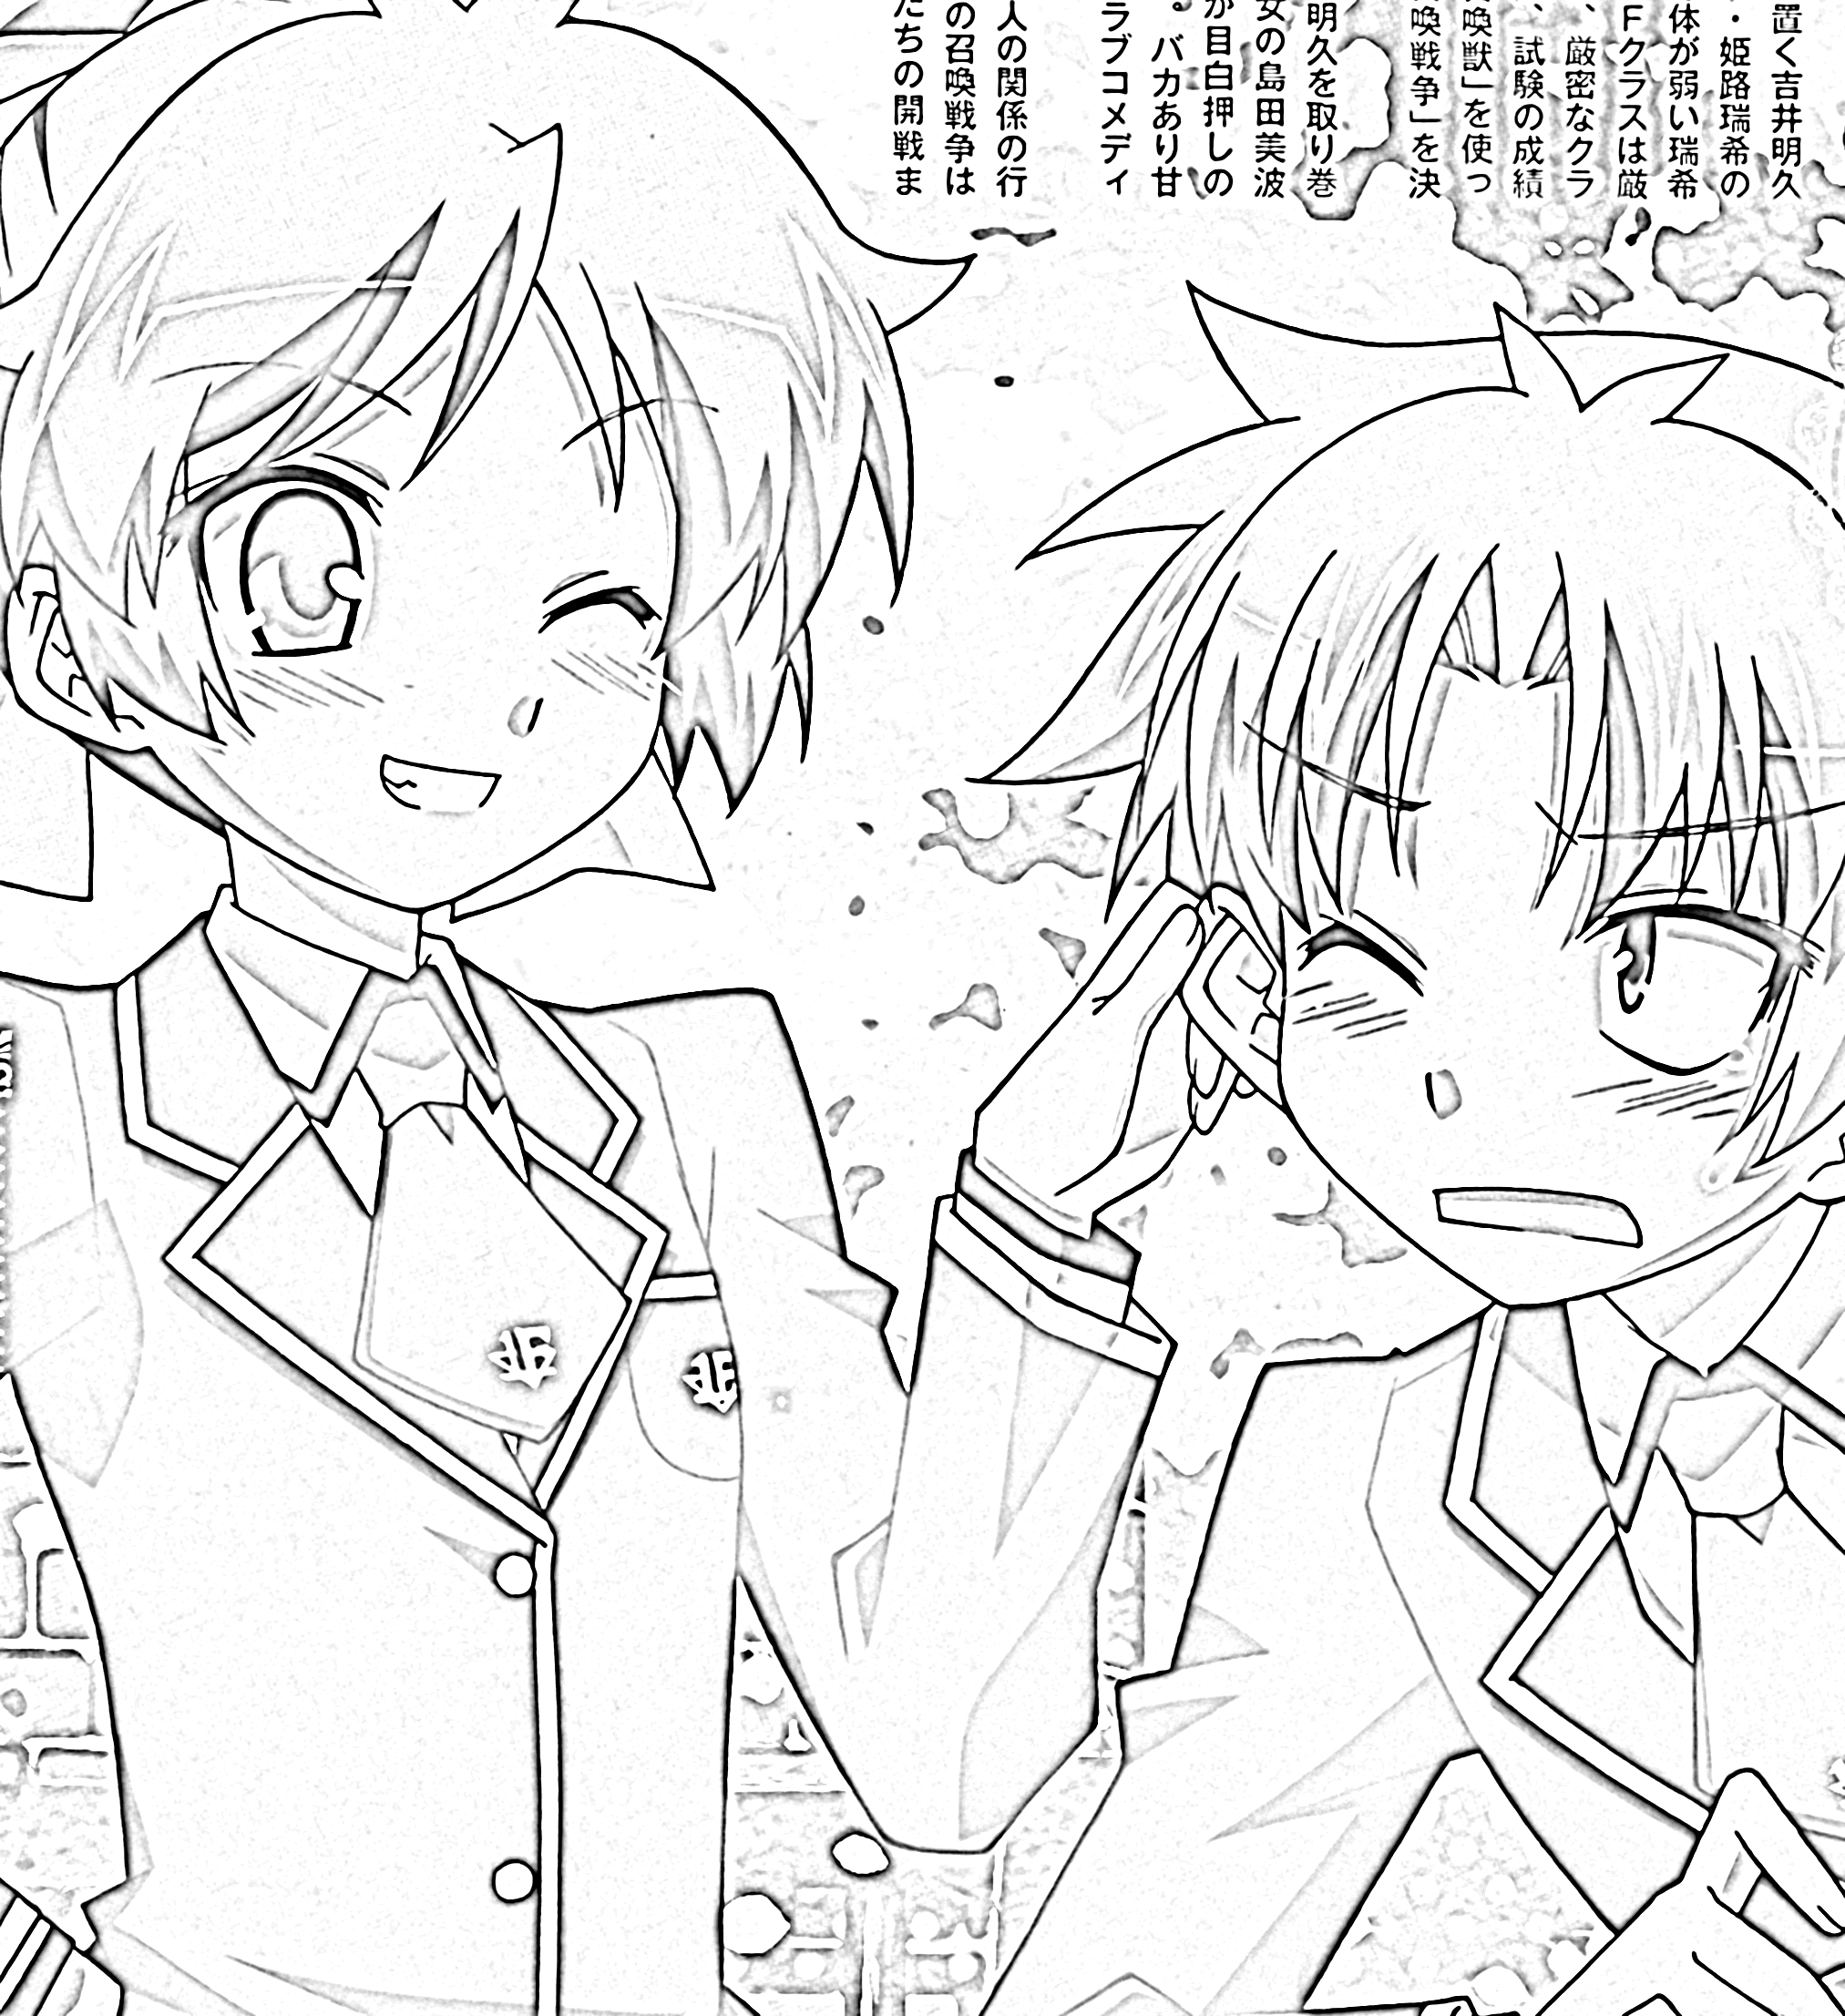 baka and test coloring pages